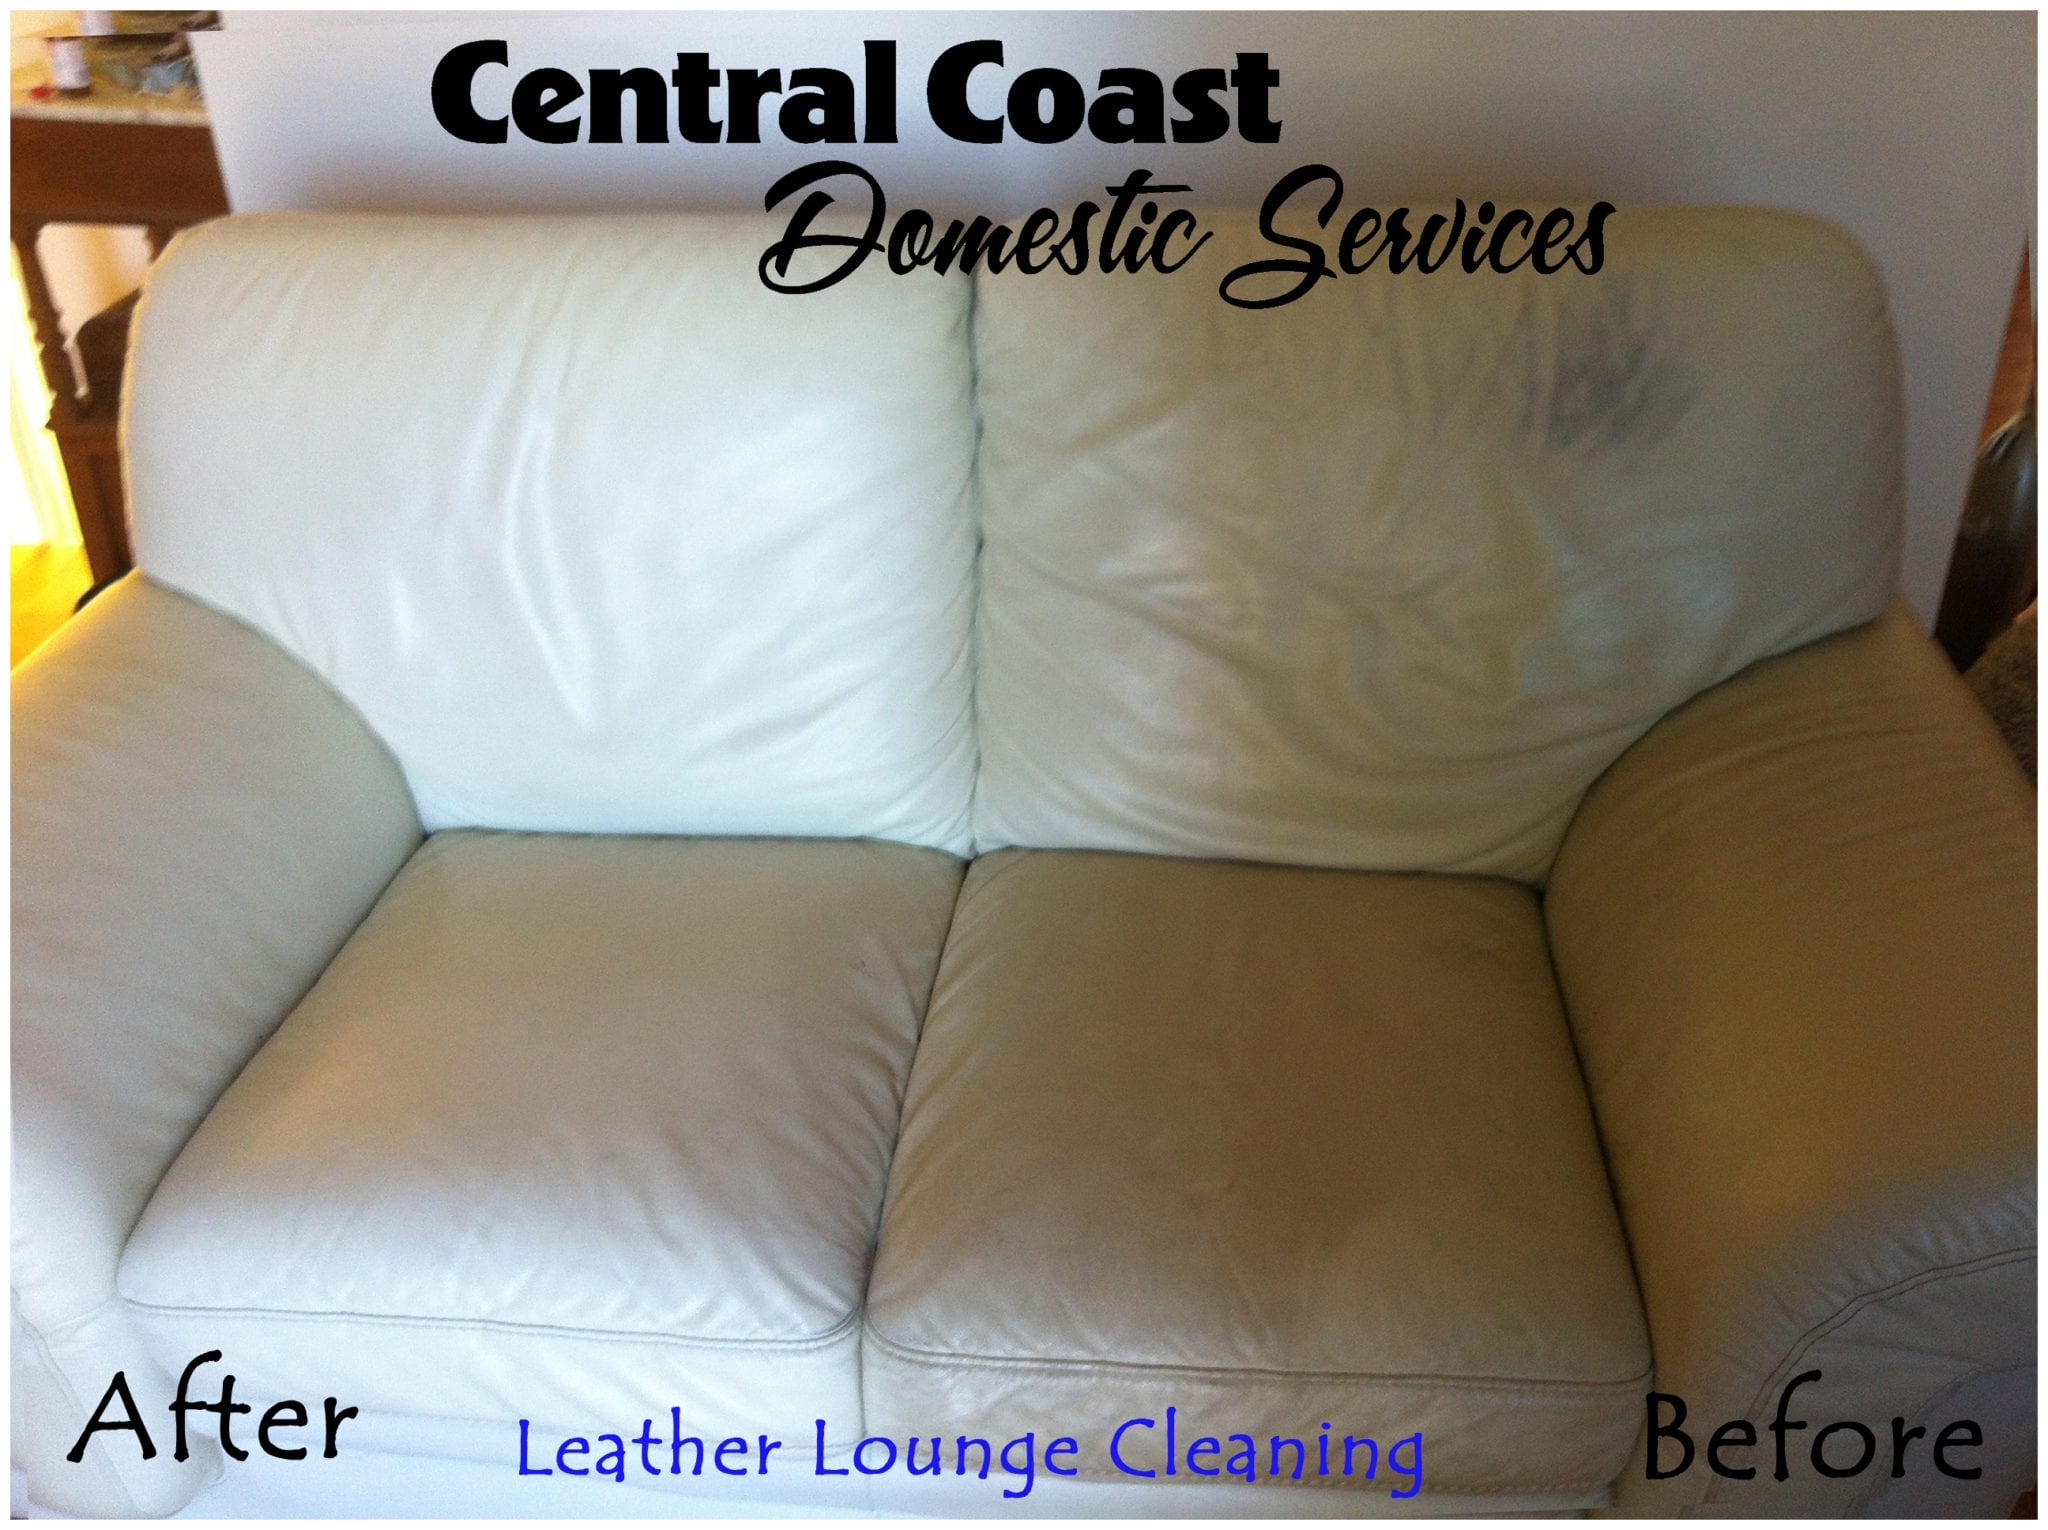 leather lounge before & after